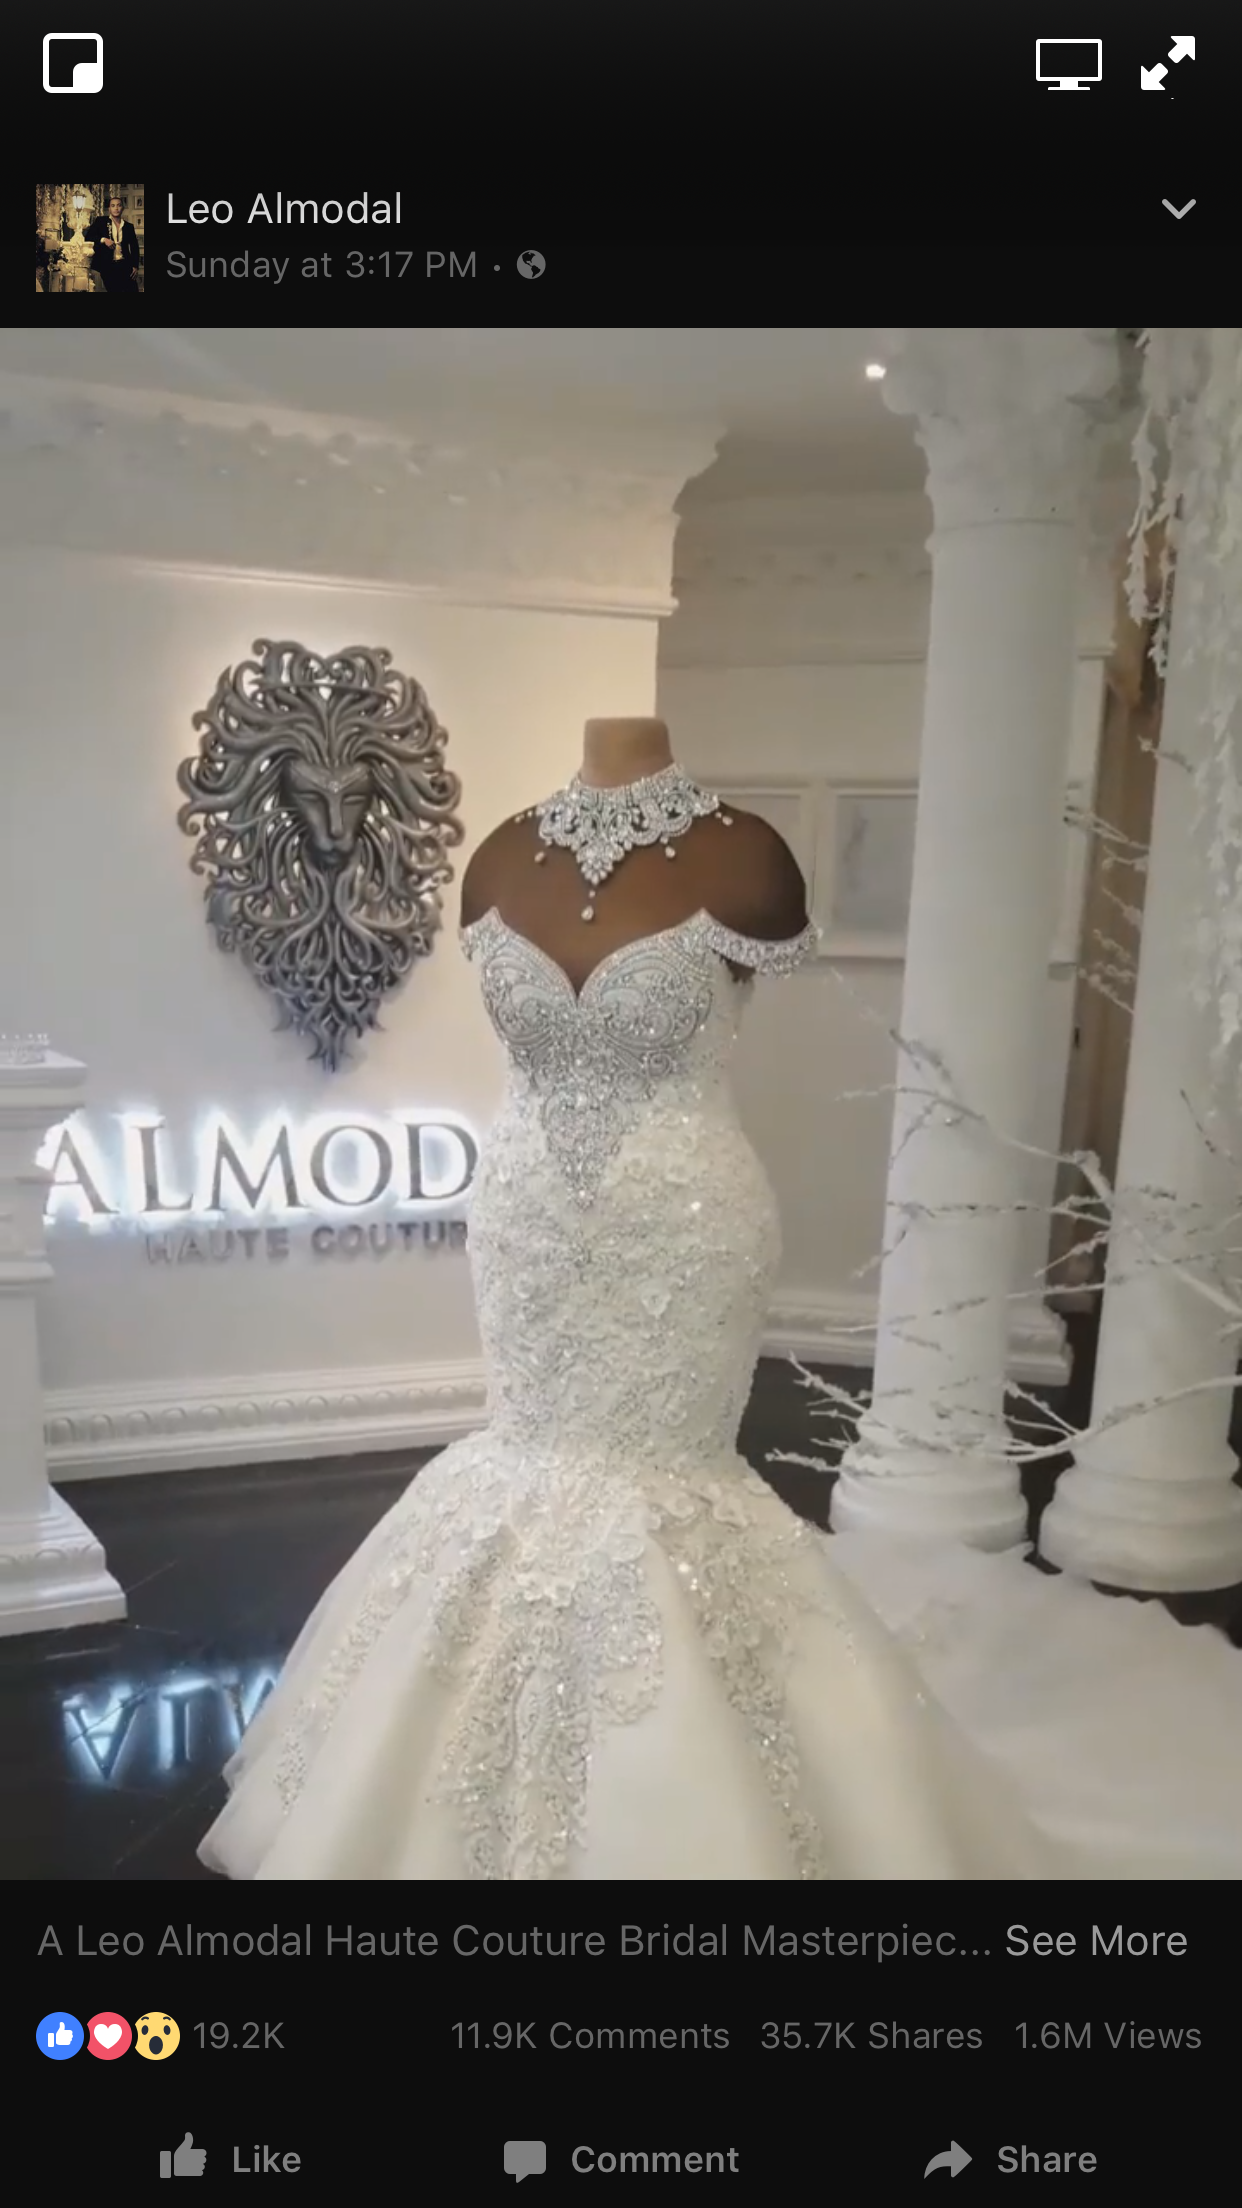 Leo Almodal Haute Couture Wedding Dress Absolutely Stunning